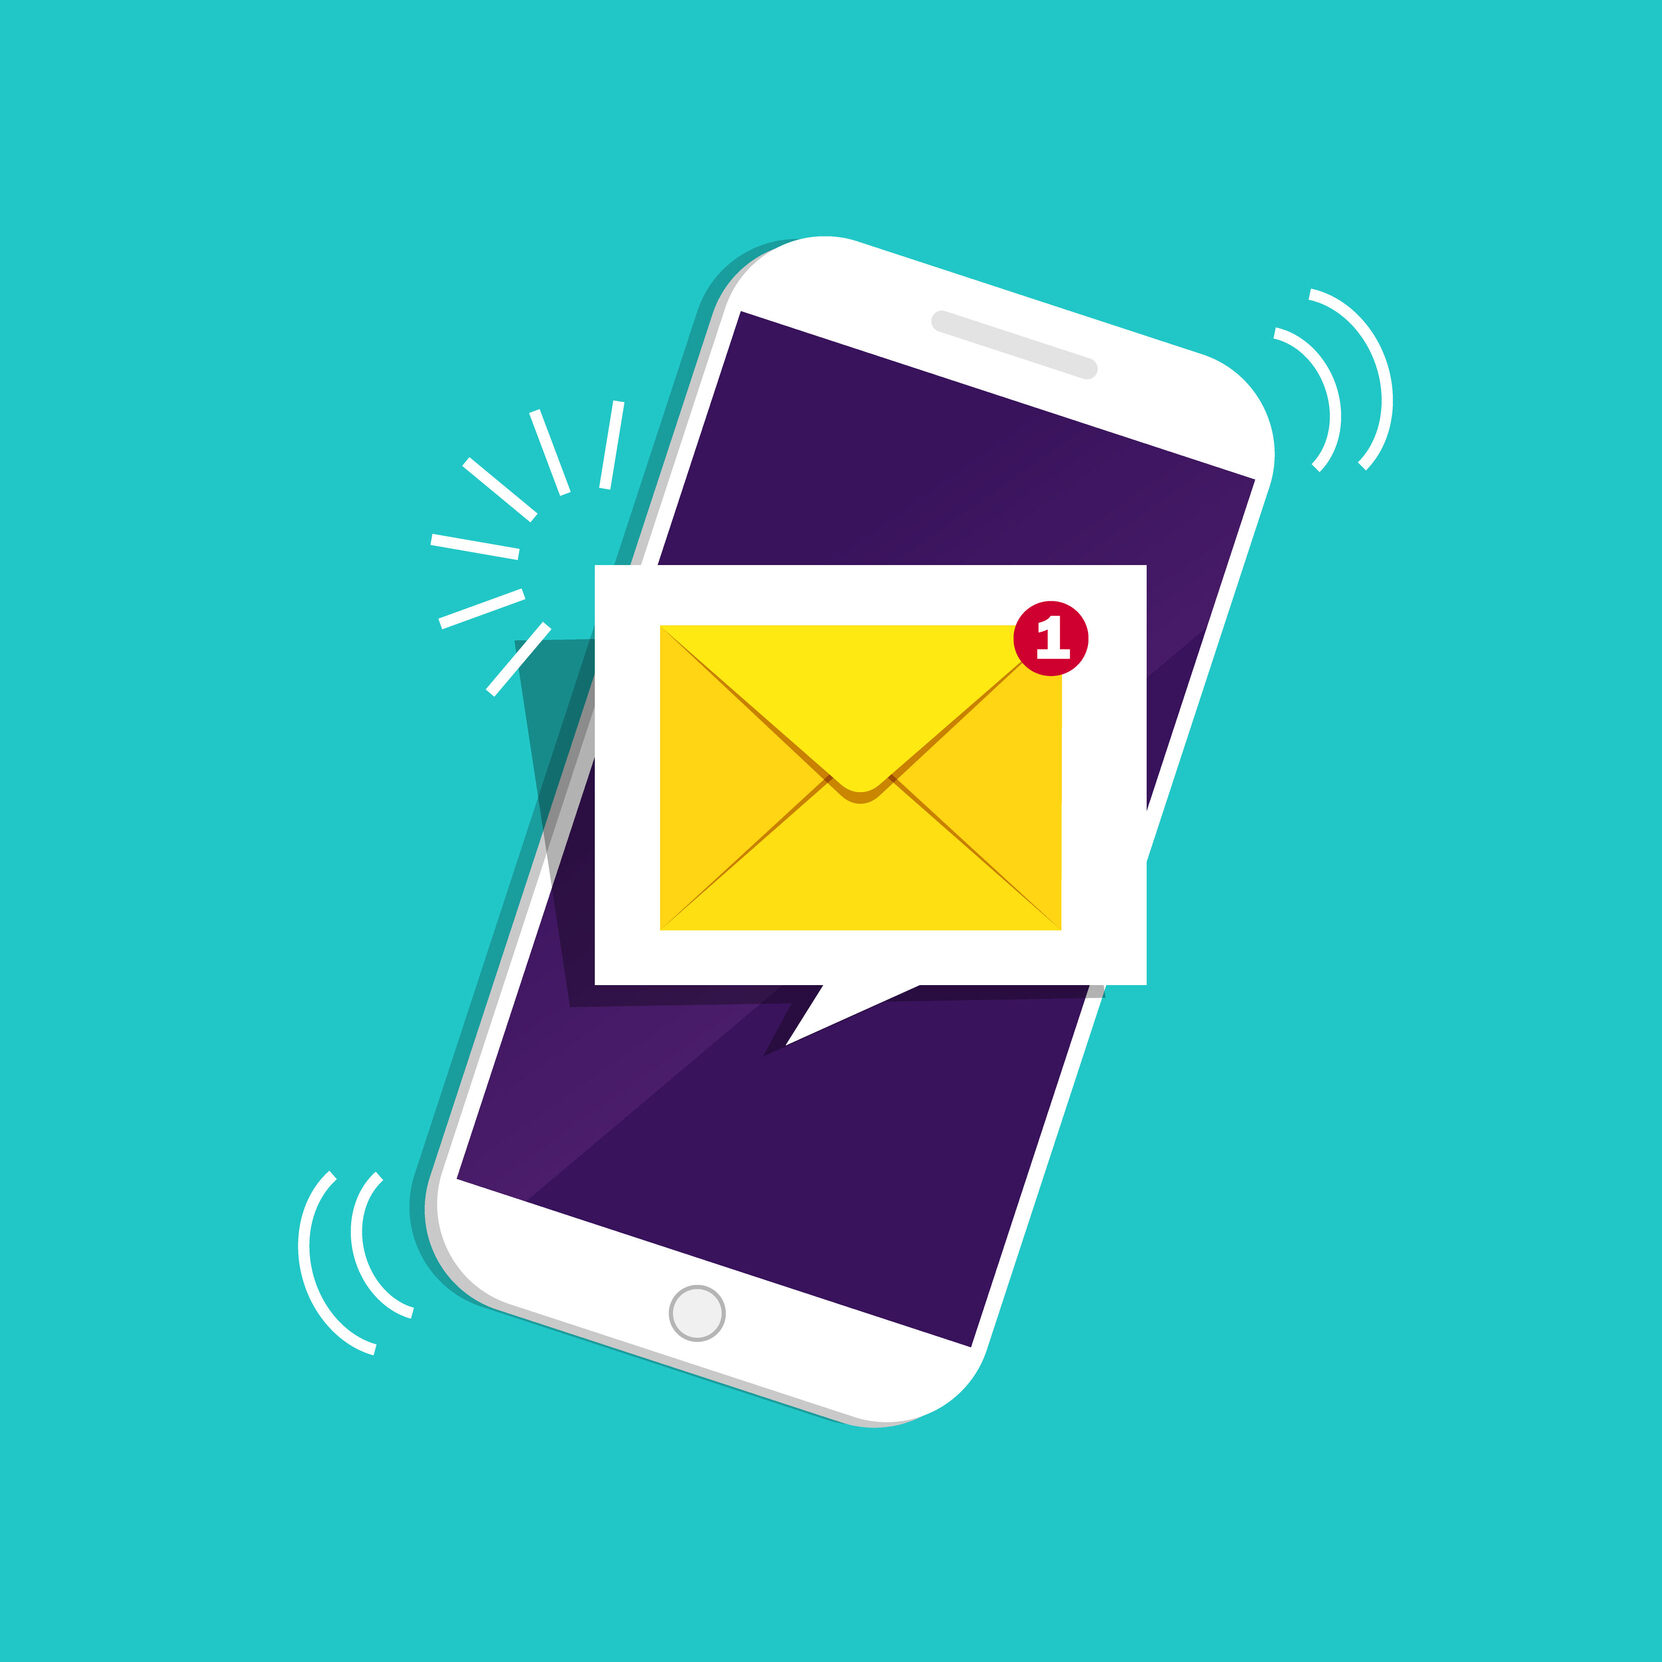 Smartphone with notification sms on screen.Alert of new message mail on mobile phone. Unread sms message on screen of cellphone. Reminder inbox notice. 3d flat design vector illustration